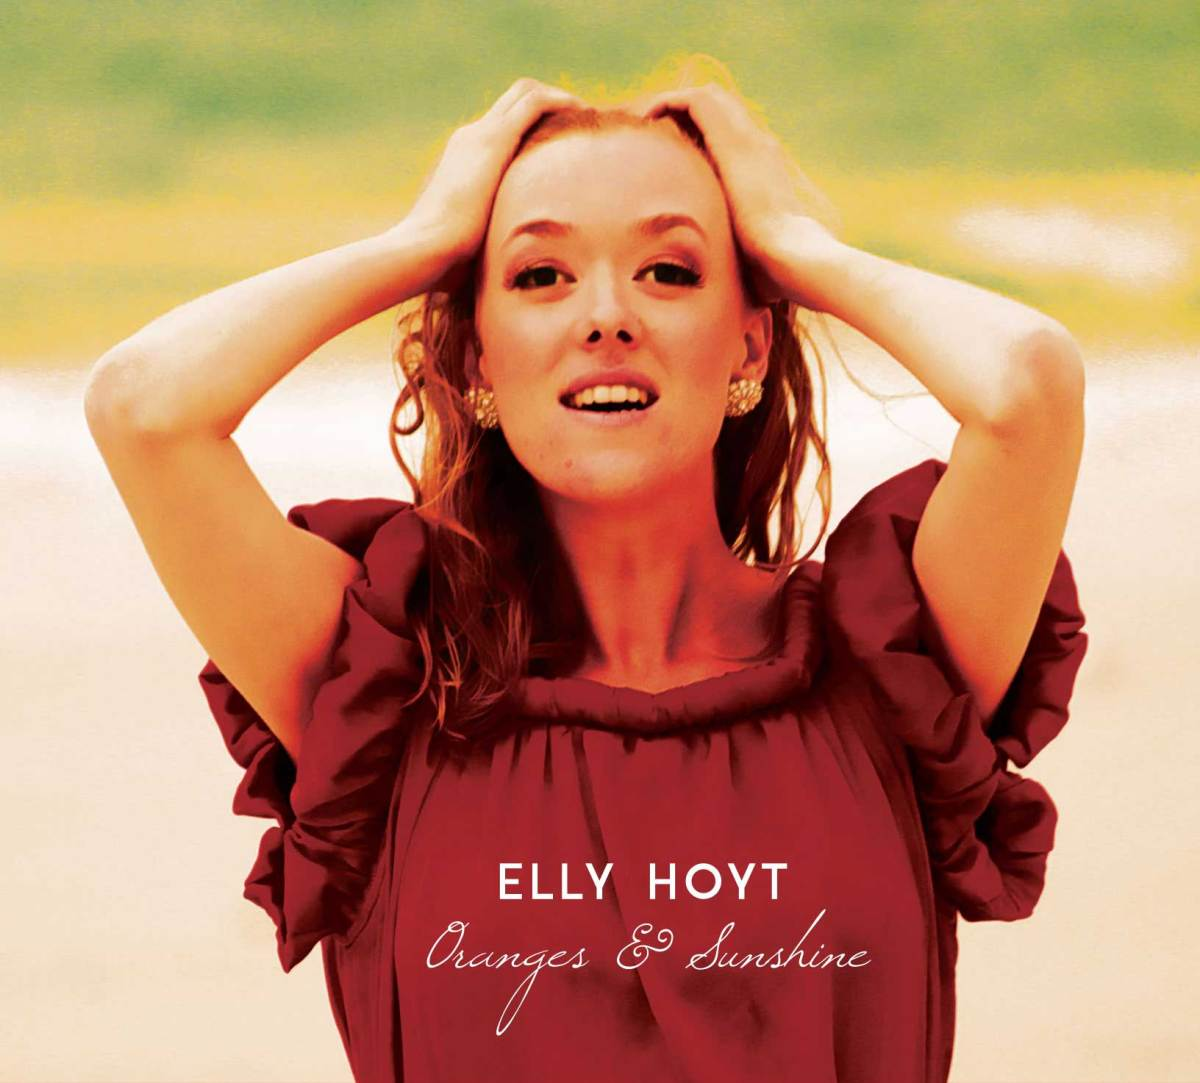 REVIEW: Elly Hoyt - Oranges & Sunshine